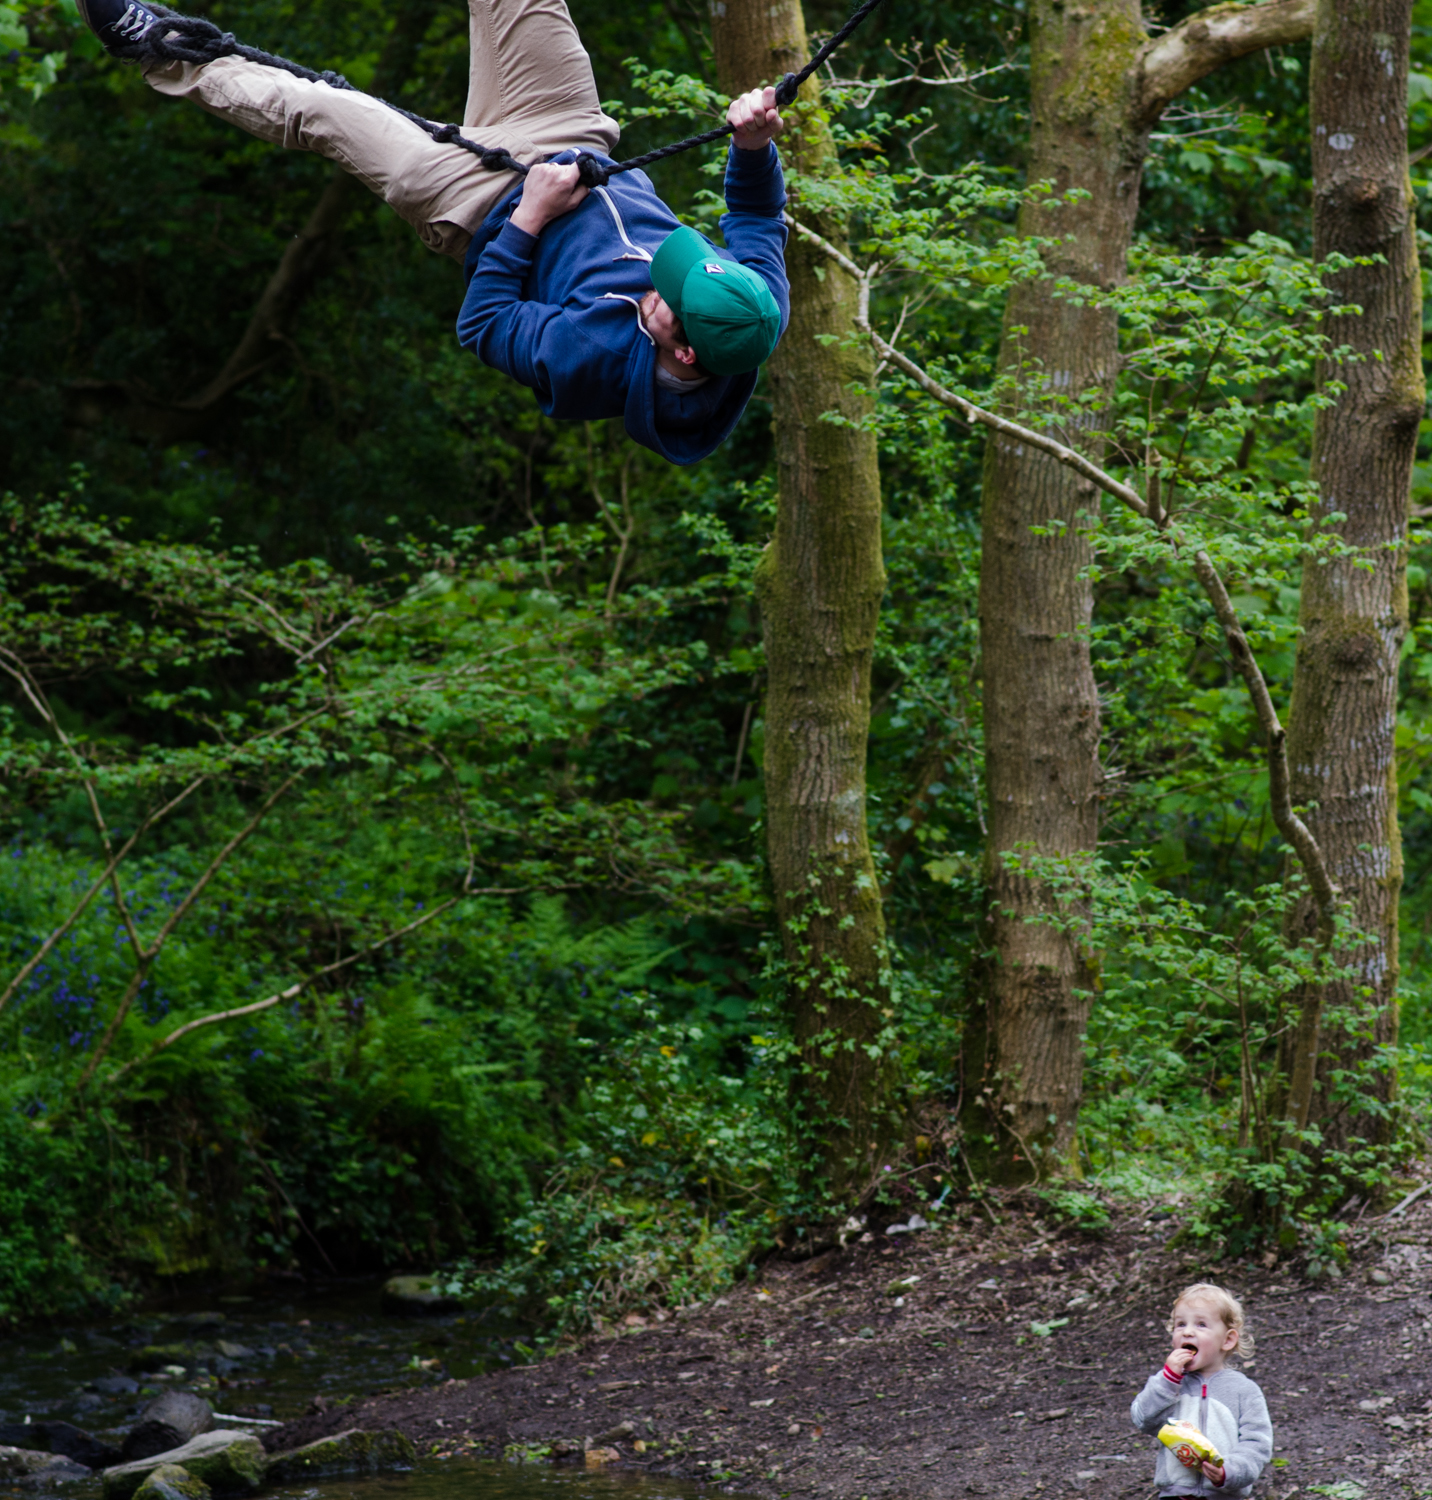 My son watching as I rope swing at lower town woods